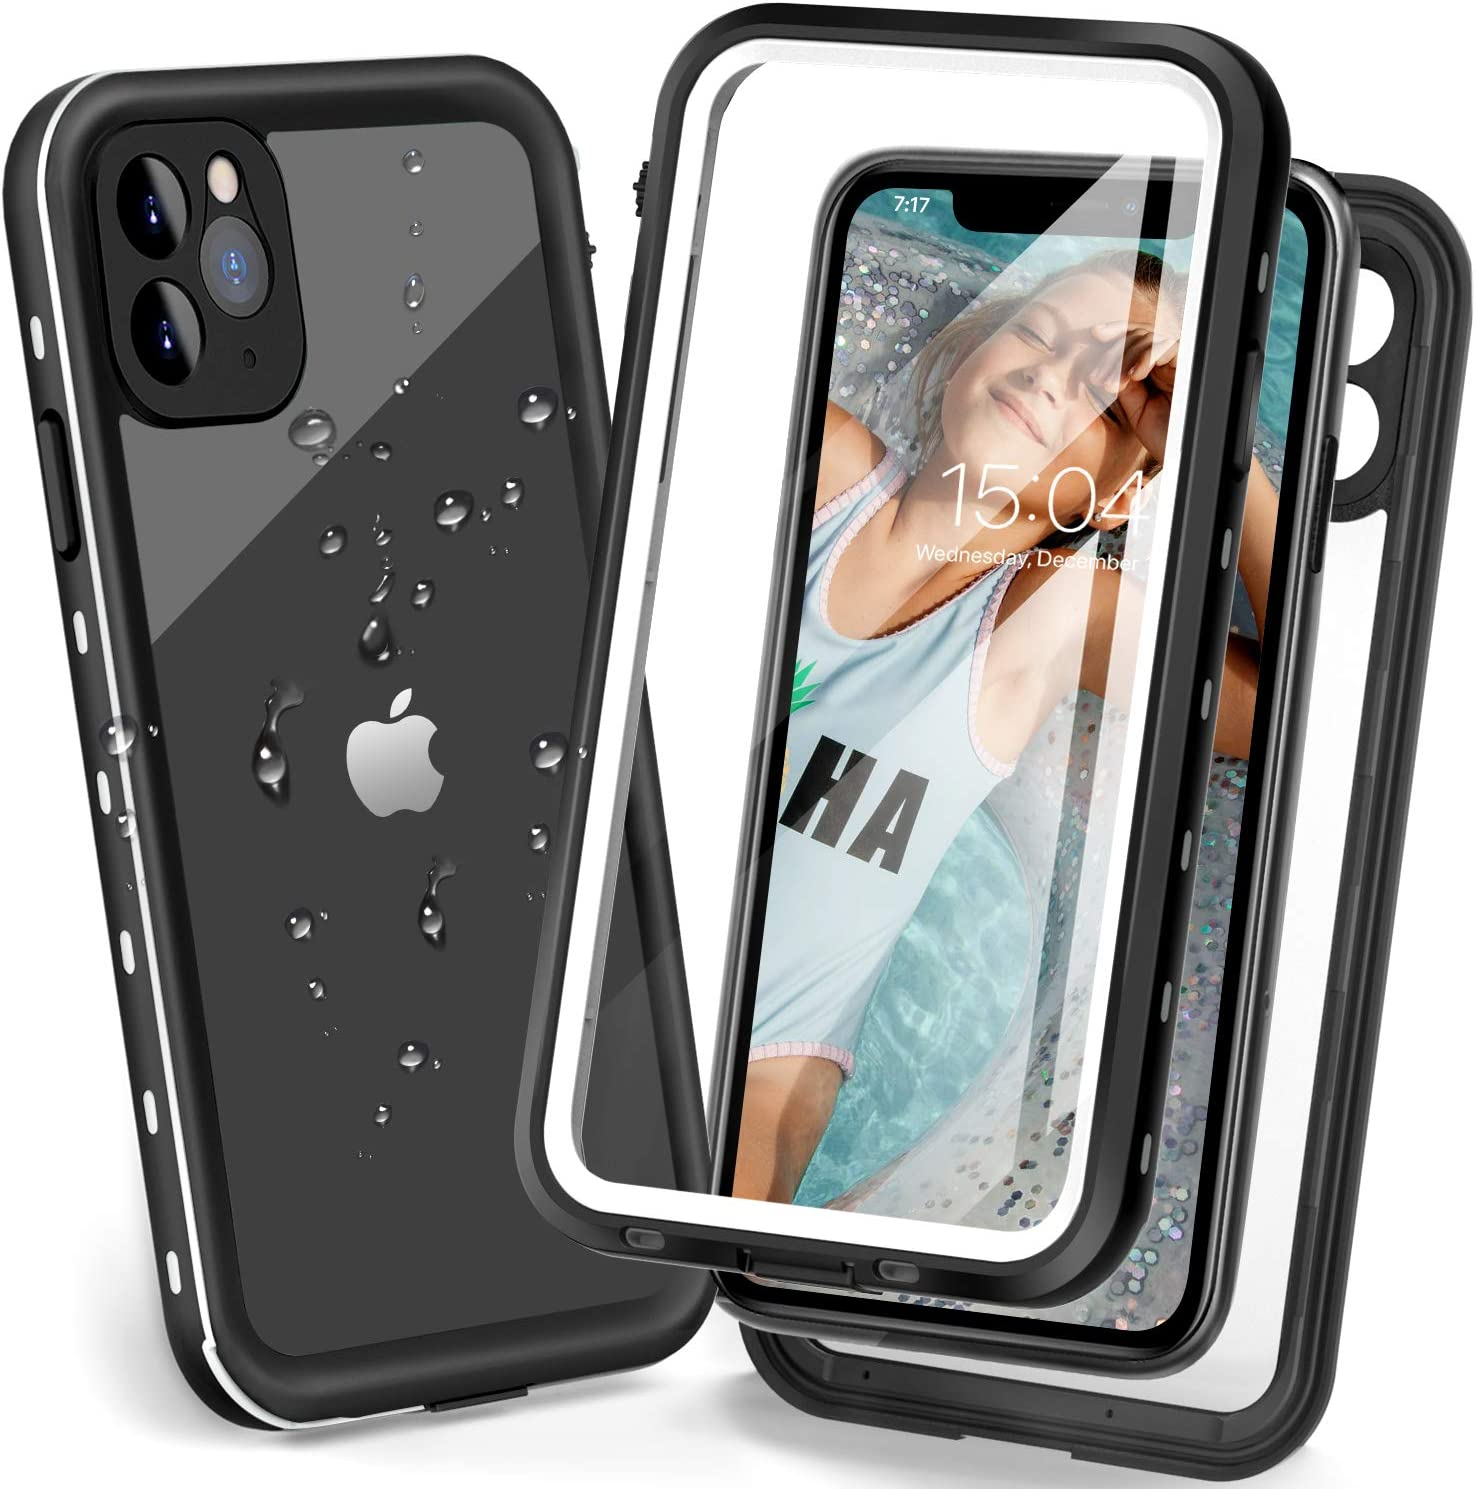 iPhone 11 Pro Max Waterproof case, Underwater Full Sealed Rugged Heavy Duty Protective Case Dustproof Snowproof Shockproof Waterproof Case for iPhone 11 Pro Max with Bulit-in Screen Protector (White)